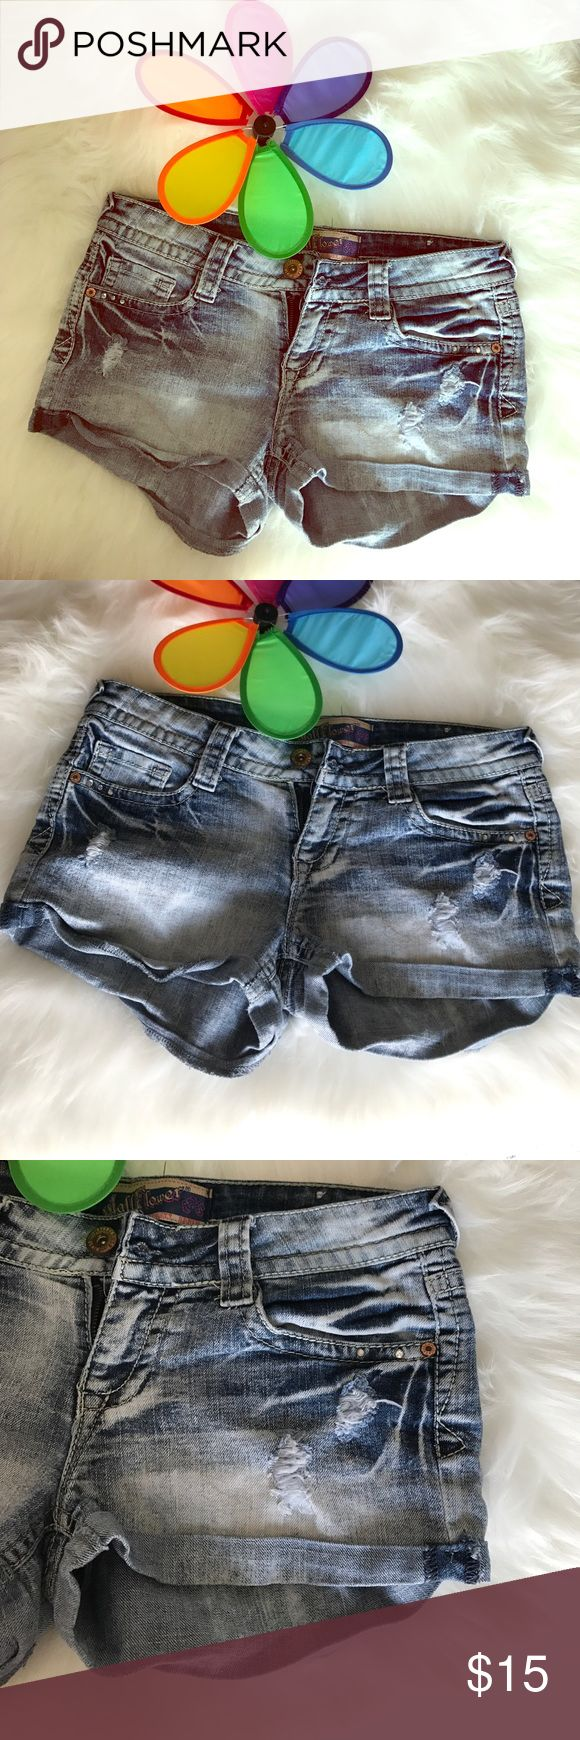 WallFlower Jean Shorts Factory distressed Jean Shorts Size 7 Pre owned no visible flaws Wallflower Shorts Jean Shorts